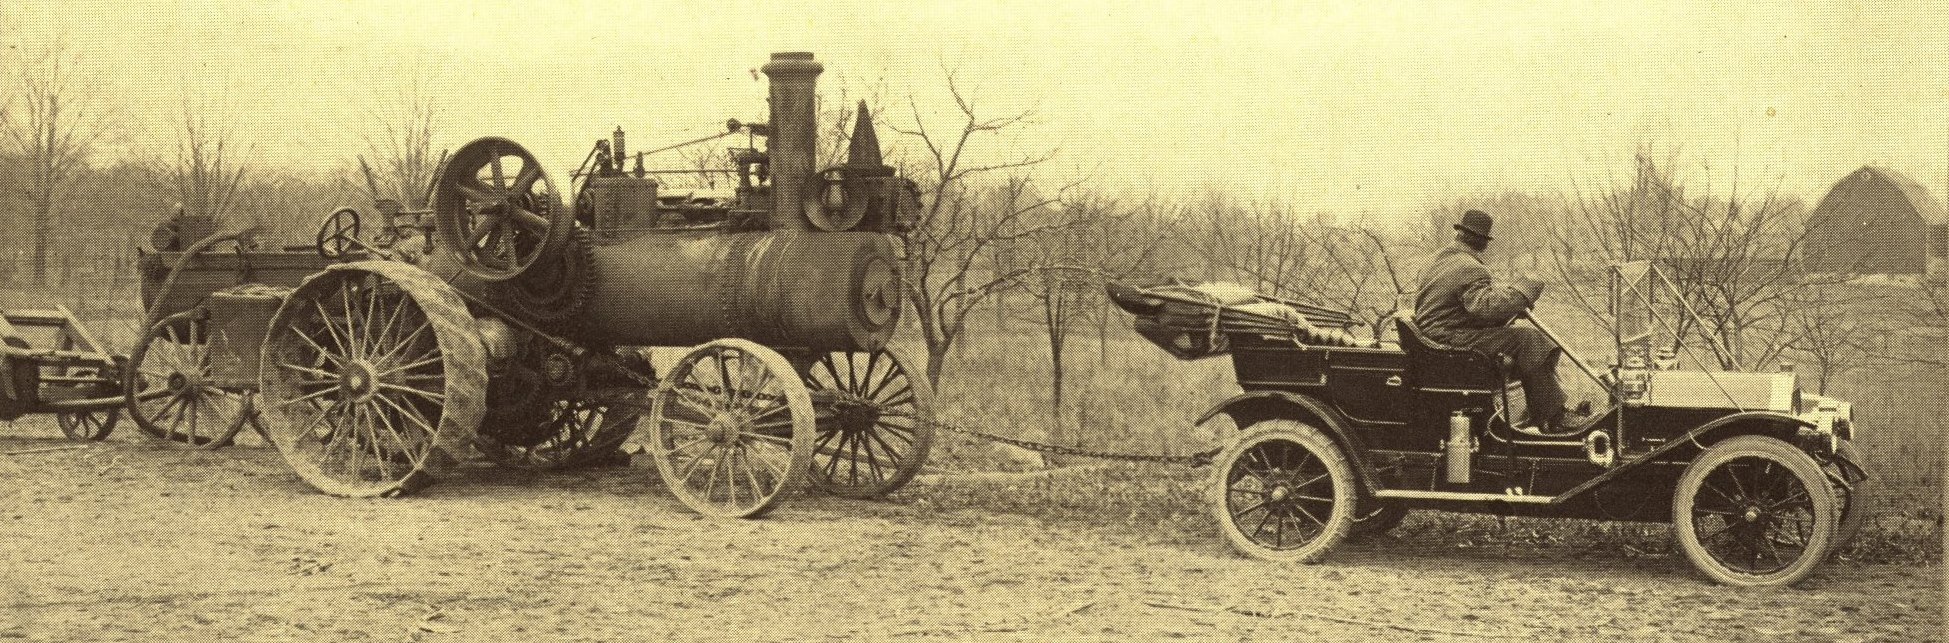 Cartercar Towing a Steam Traction Engine - from circa 1910 catalog